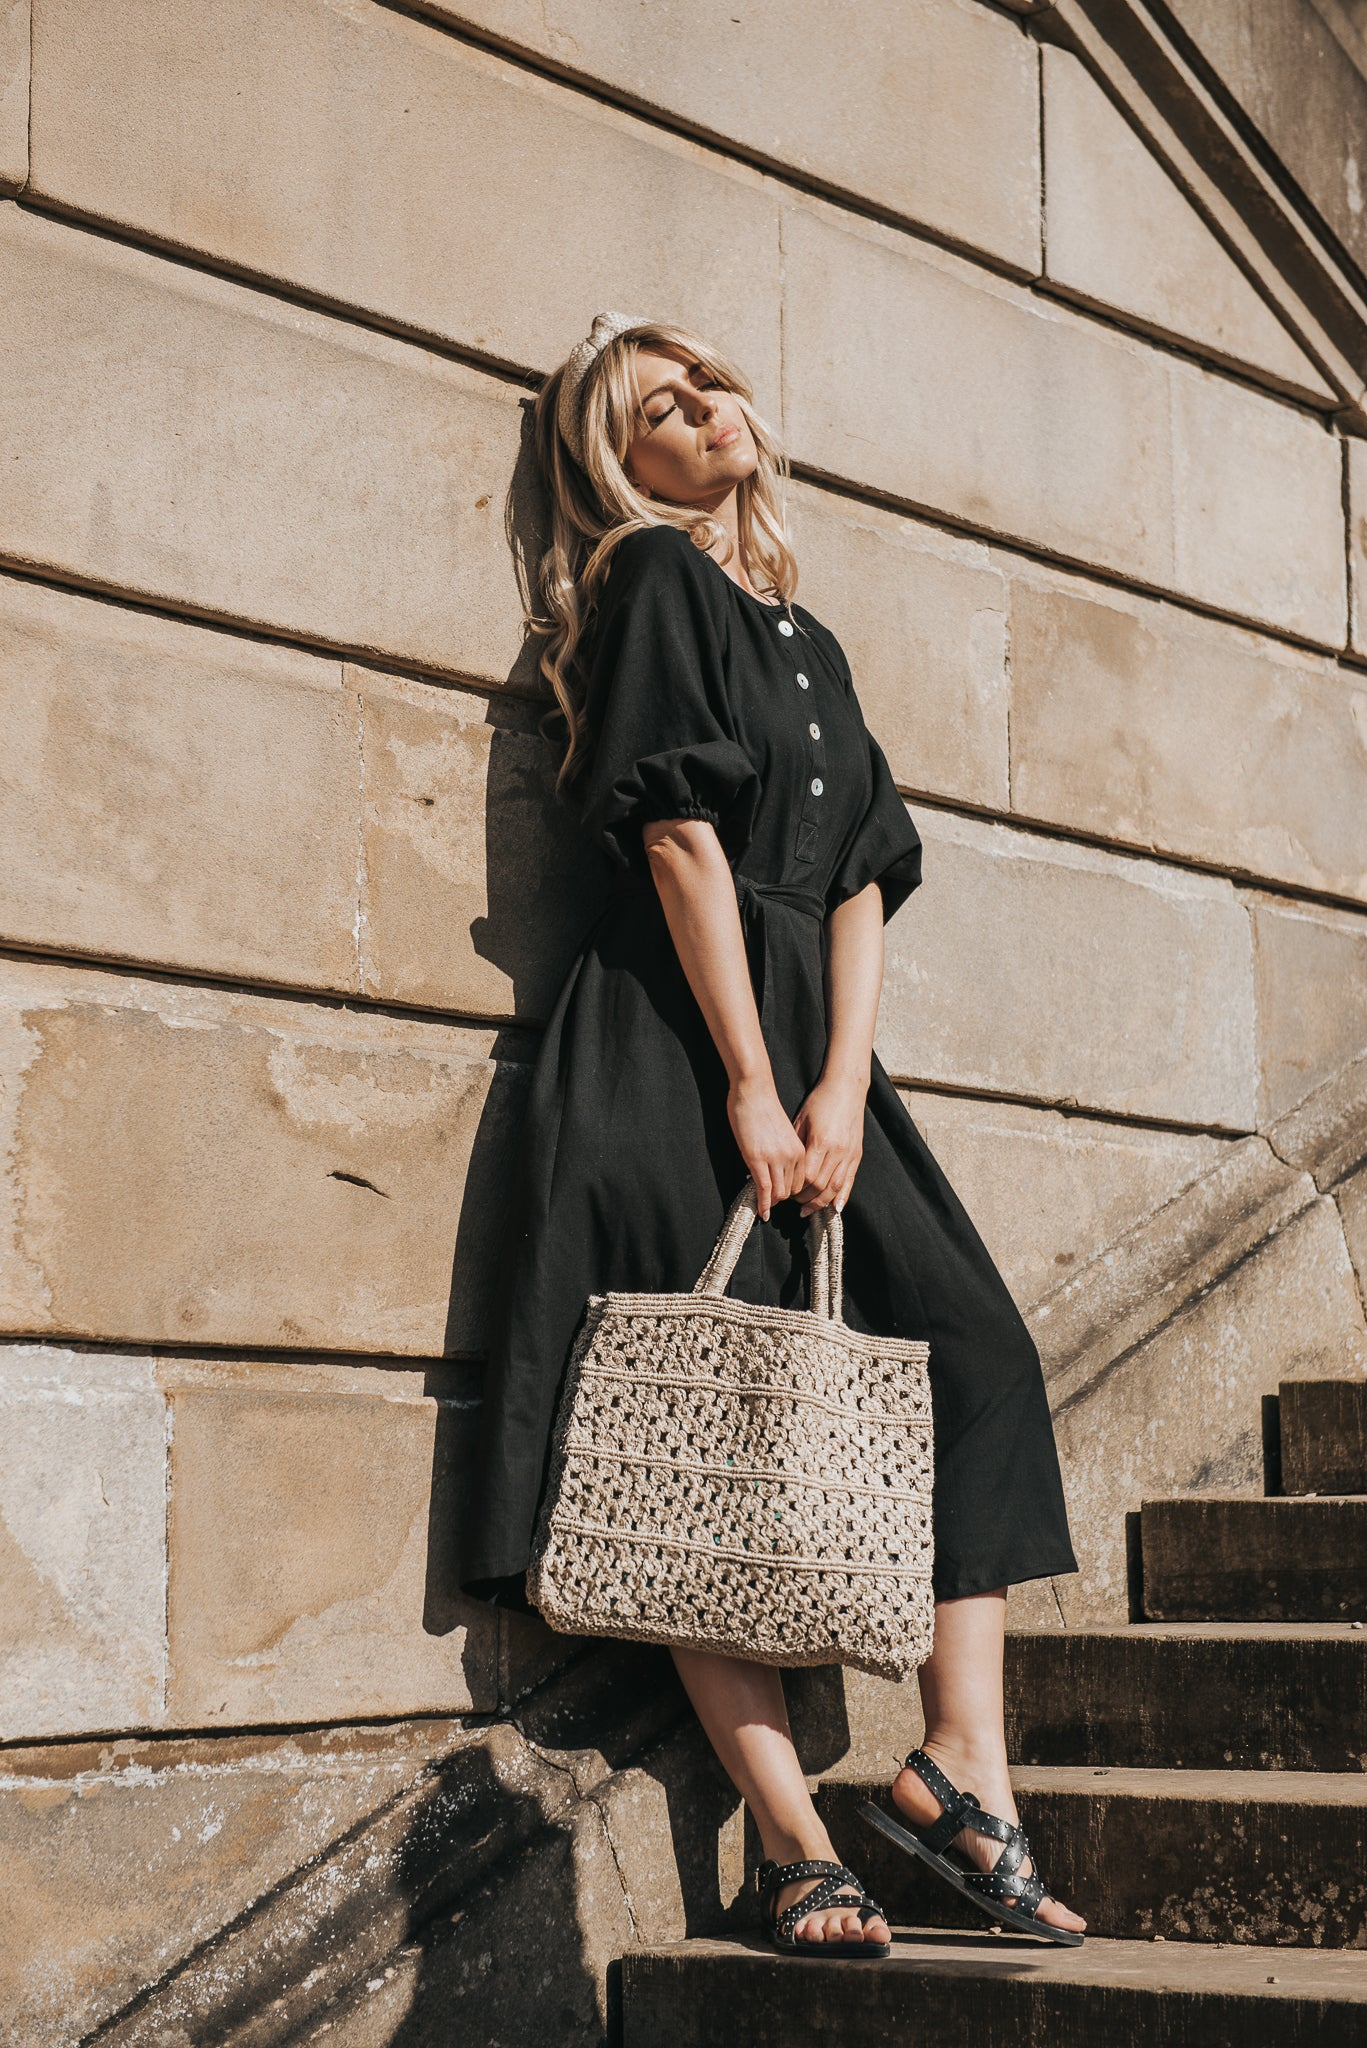 Standing in the sun, wearing the Georgiana Midi dress in black handwoven cotton. Styled with a natural woven headband and handwoven Maison Bengal Jute tote bag and black leather gladiator sandals.